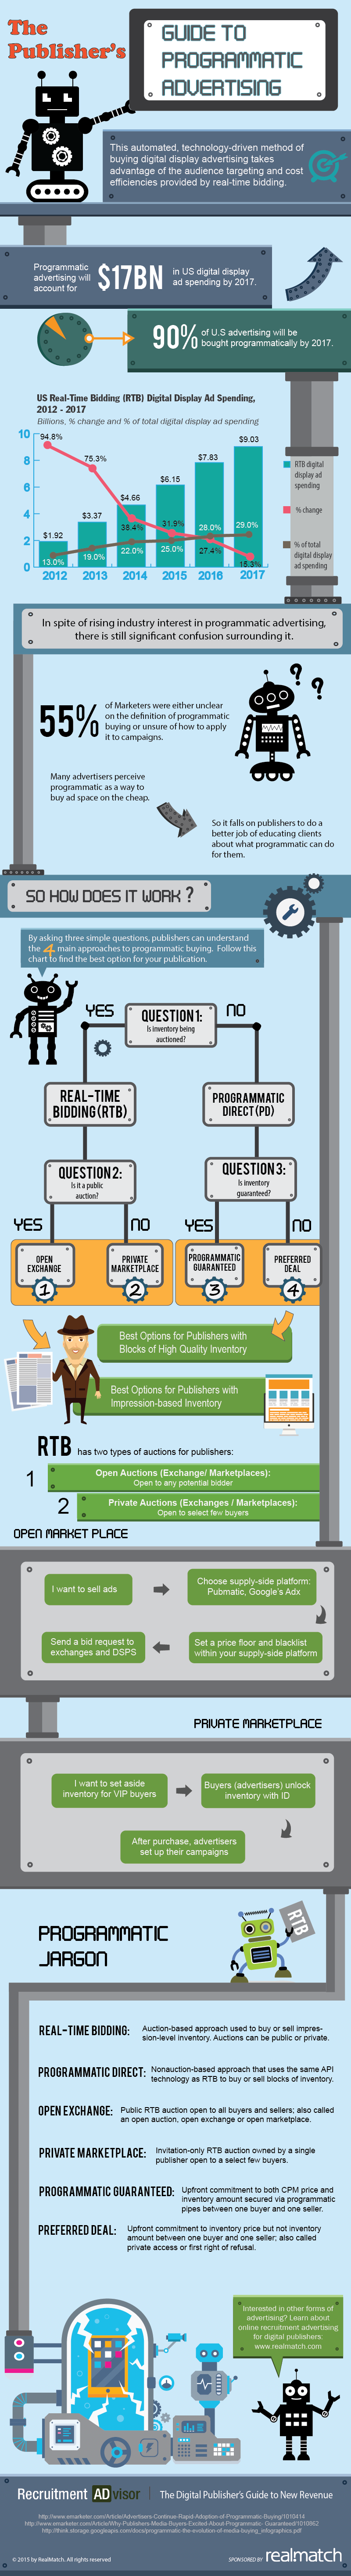 The-Publishers-Guide-to-Programmatic-Advertising-v2-01